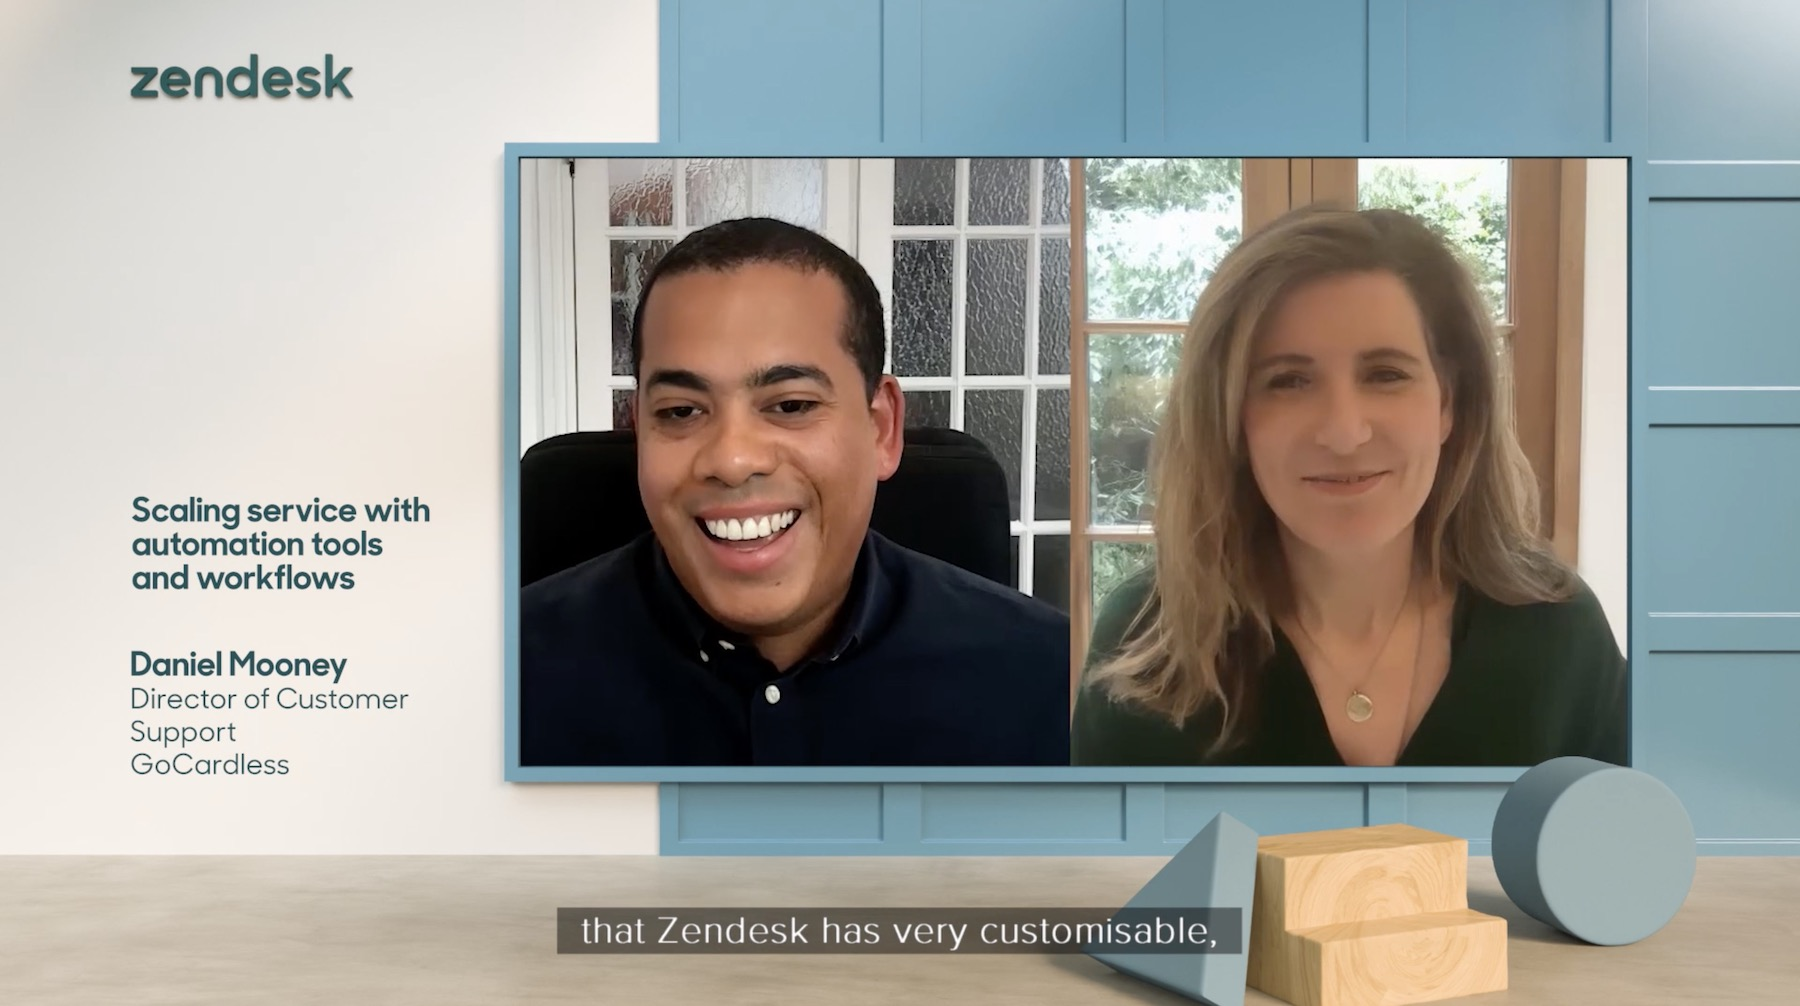 Two contributors talking in the split-screen view of the Zendesk Morning Show 3D set